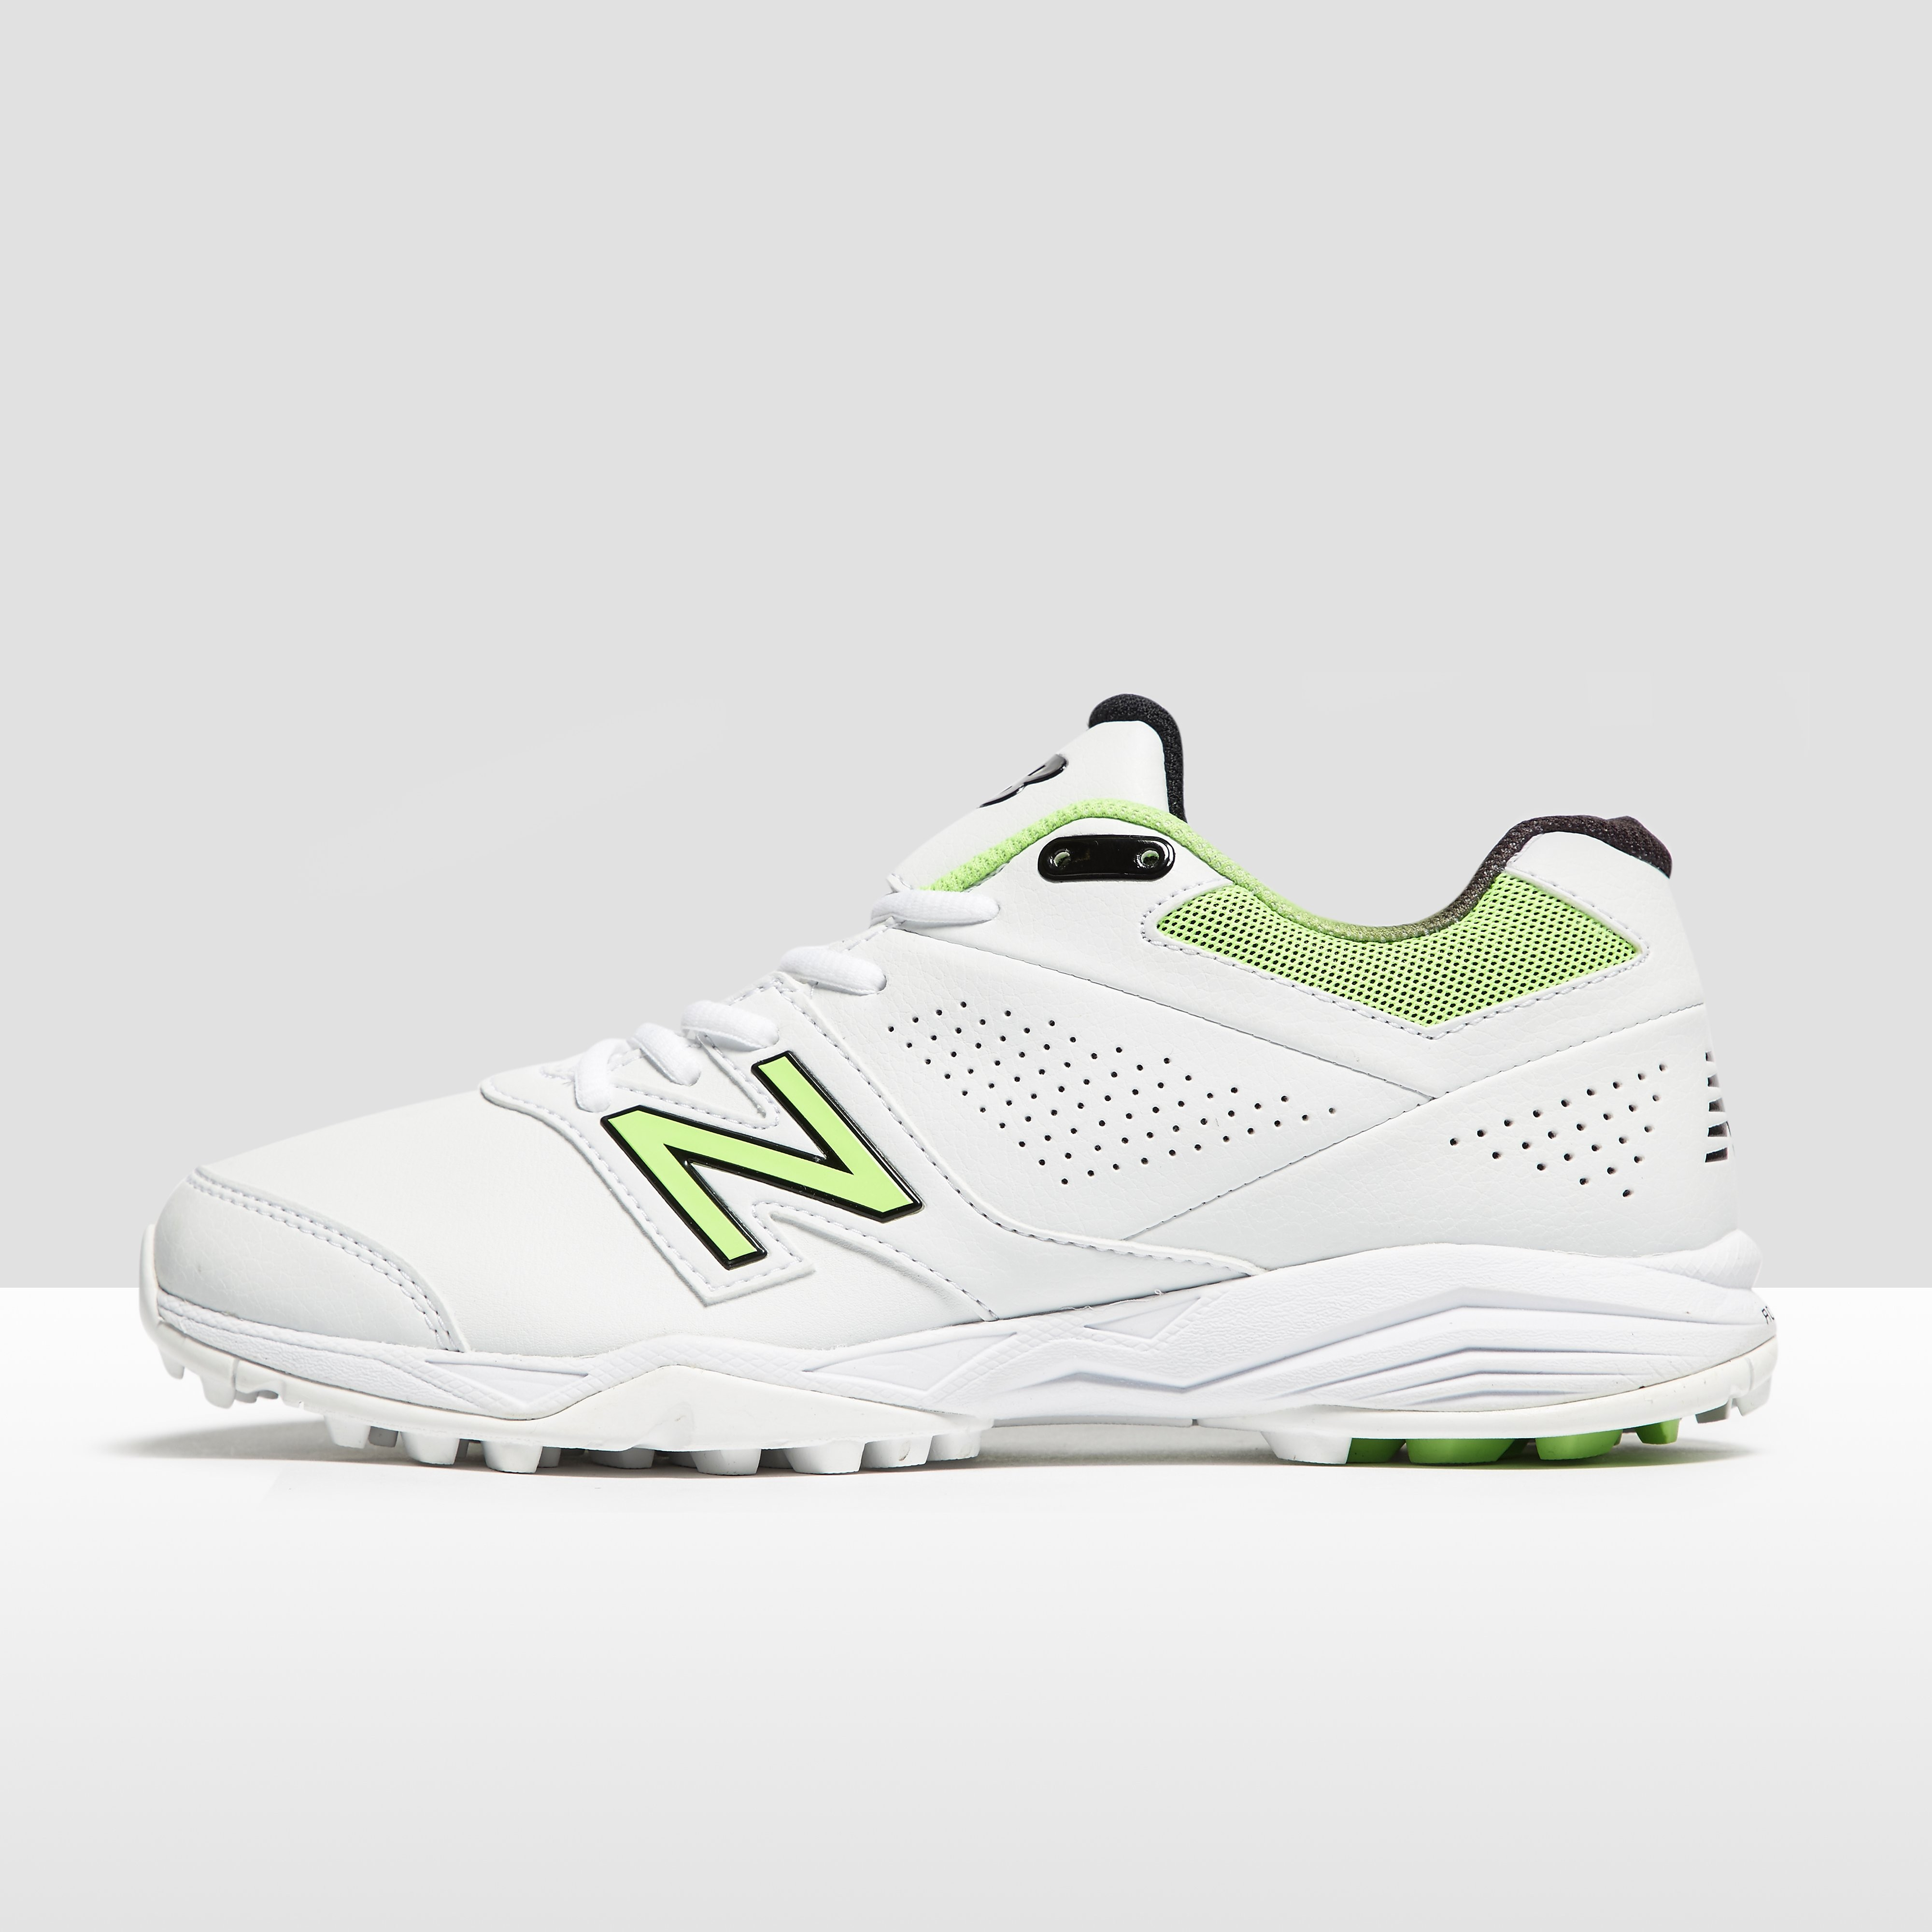 New Balance CK4020 Men's Cricket Shoes